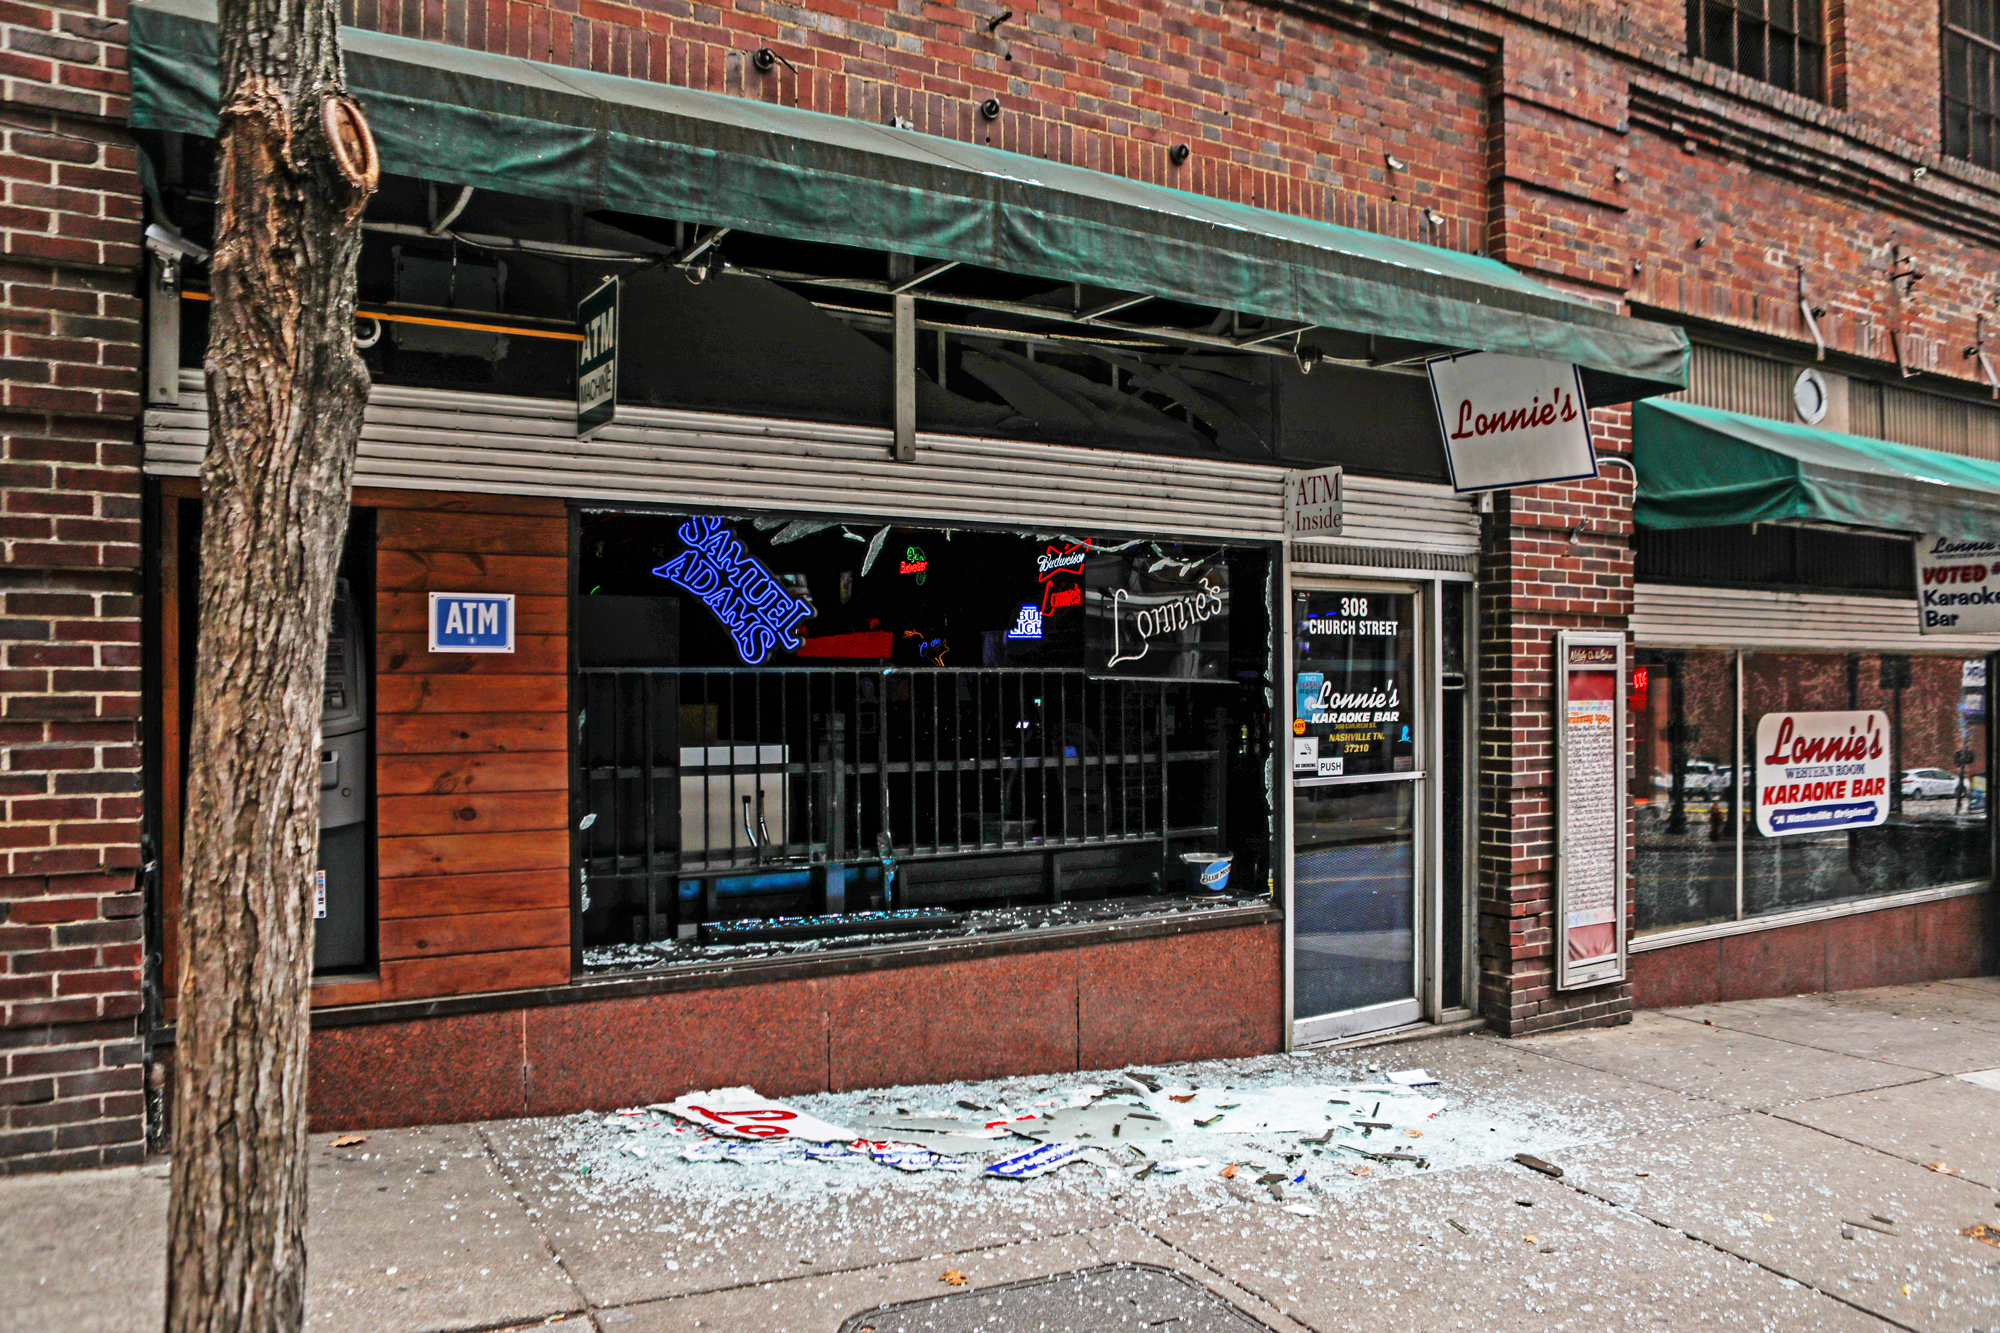 Windows are blown out of a business on Church St after an explosion on December 25, 2020 in Nashville, Tennessee.